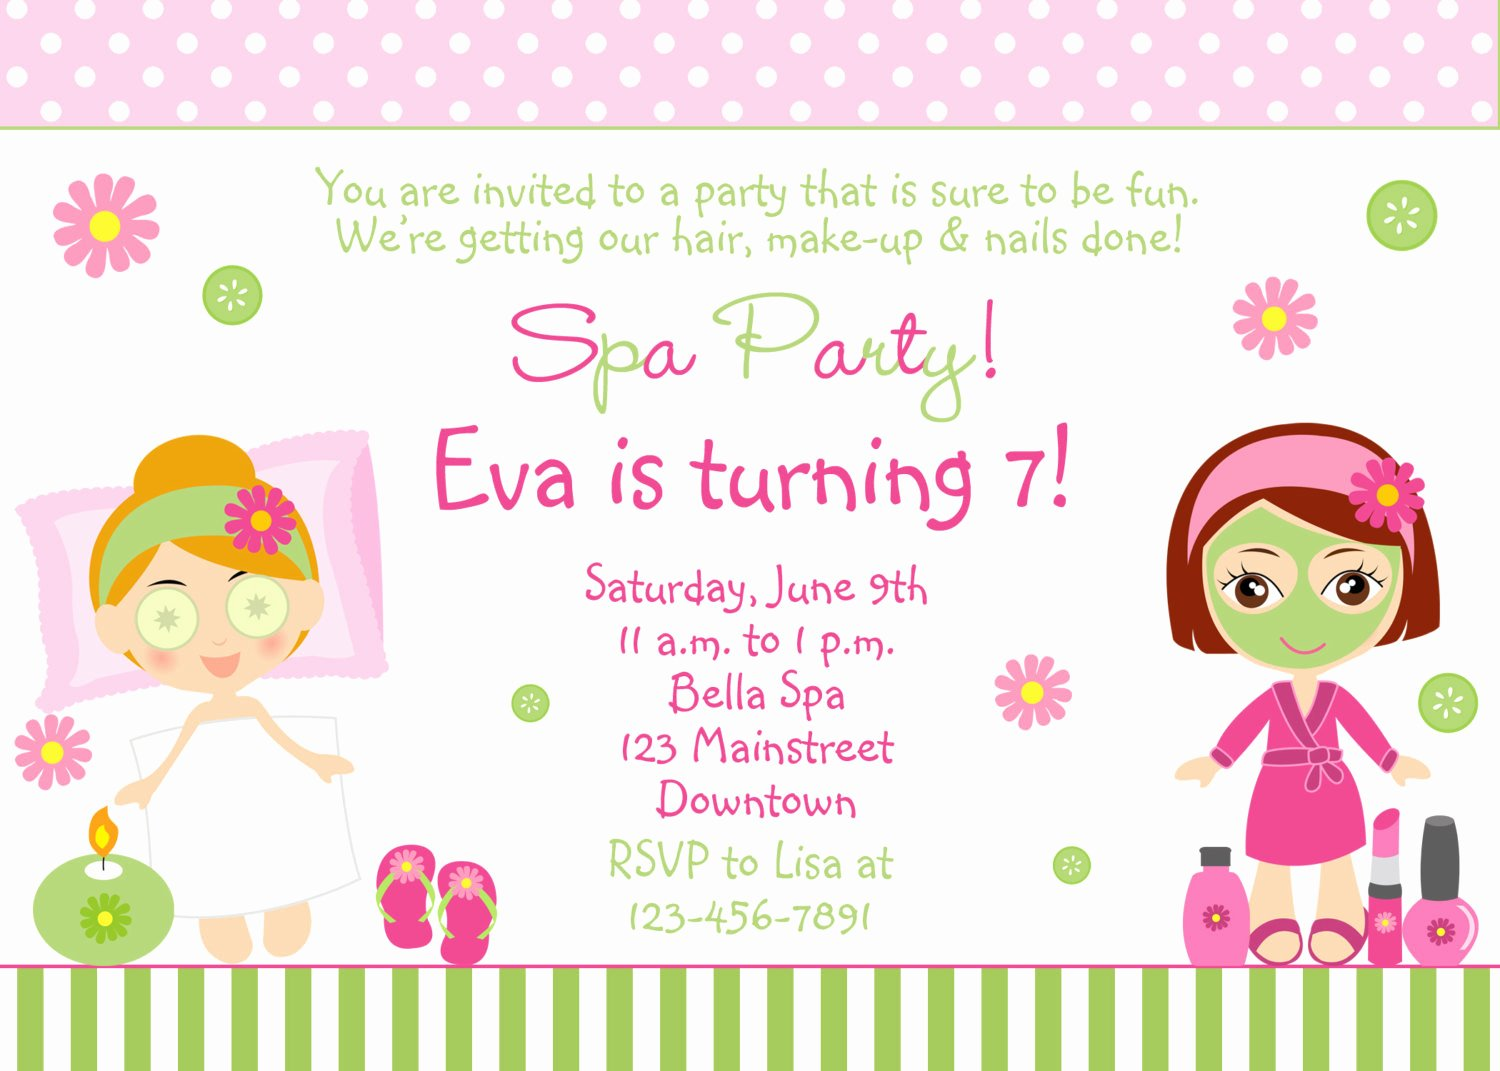 Spa Birthday Party Invitations Inspirational Spa Birthday Party Invitation Printable by thebutterflypress